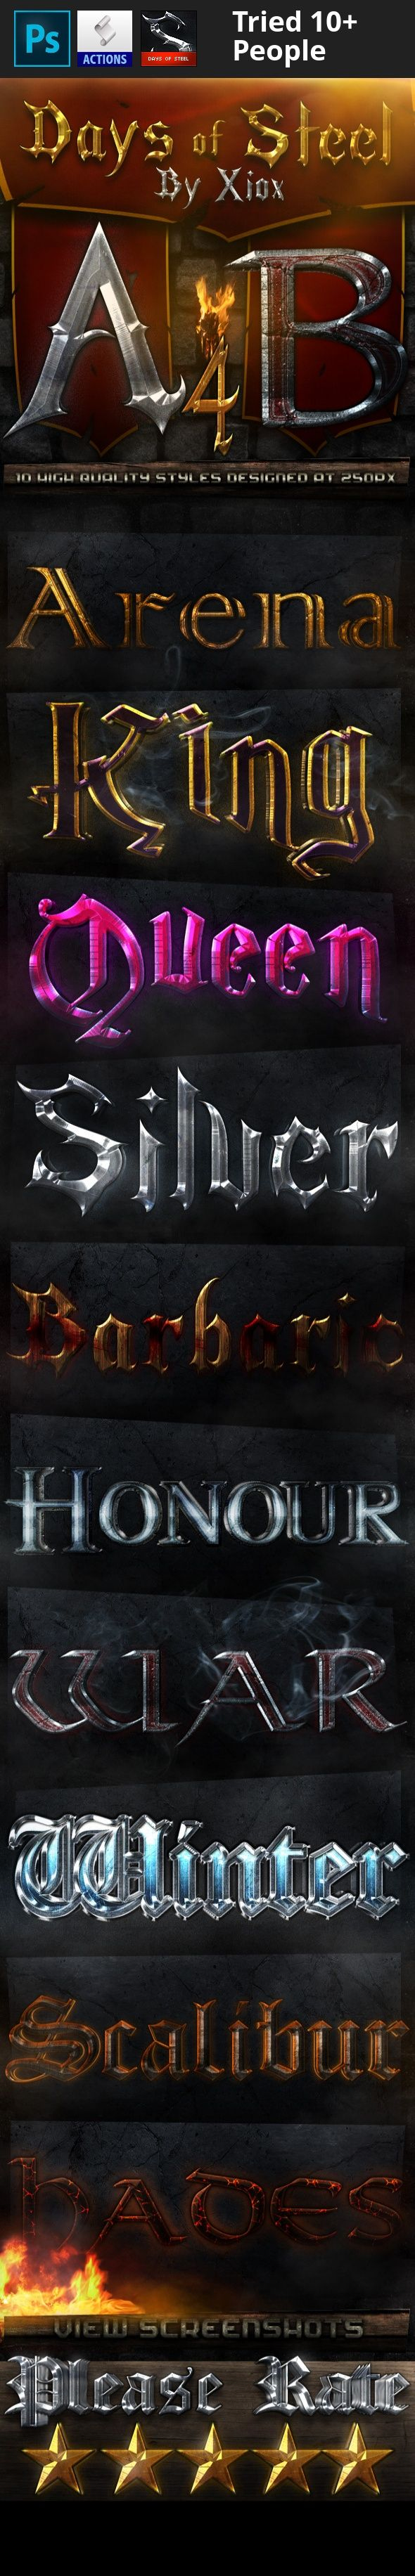 """ancient, arena, barbaric, days of steel, devin hansen, hades, honour, king, medieval, metal, old, queen, scalibur, silver, steel, war, winter, xiox 10 styles based on ancient and medieval history and myth. This pack is the fourth part of a series in which you will see up to 60 different styles and at least 6 different banners. MAKE SURE TO SEE THE SCREENSHOTS for more information on what you get. Comes with: An ASL file with each style depicted. The banner shown in """"Screenshots""""..."""